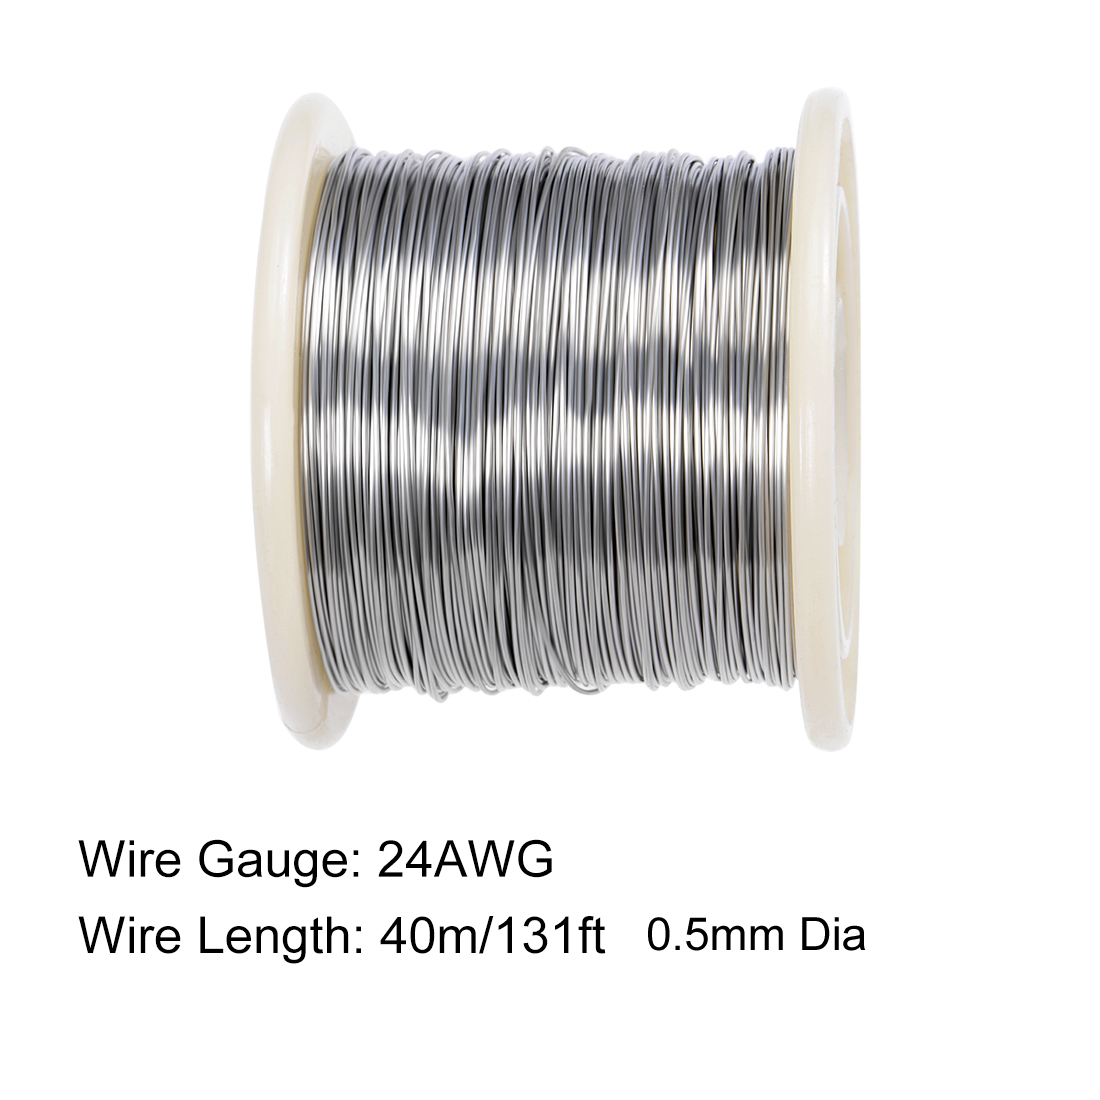 0-5mm-0-7mm-Dia-10-70M-Heating-Resistor-Wire-Nichrome-Wires-for-Heating-Elements thumbnail 4